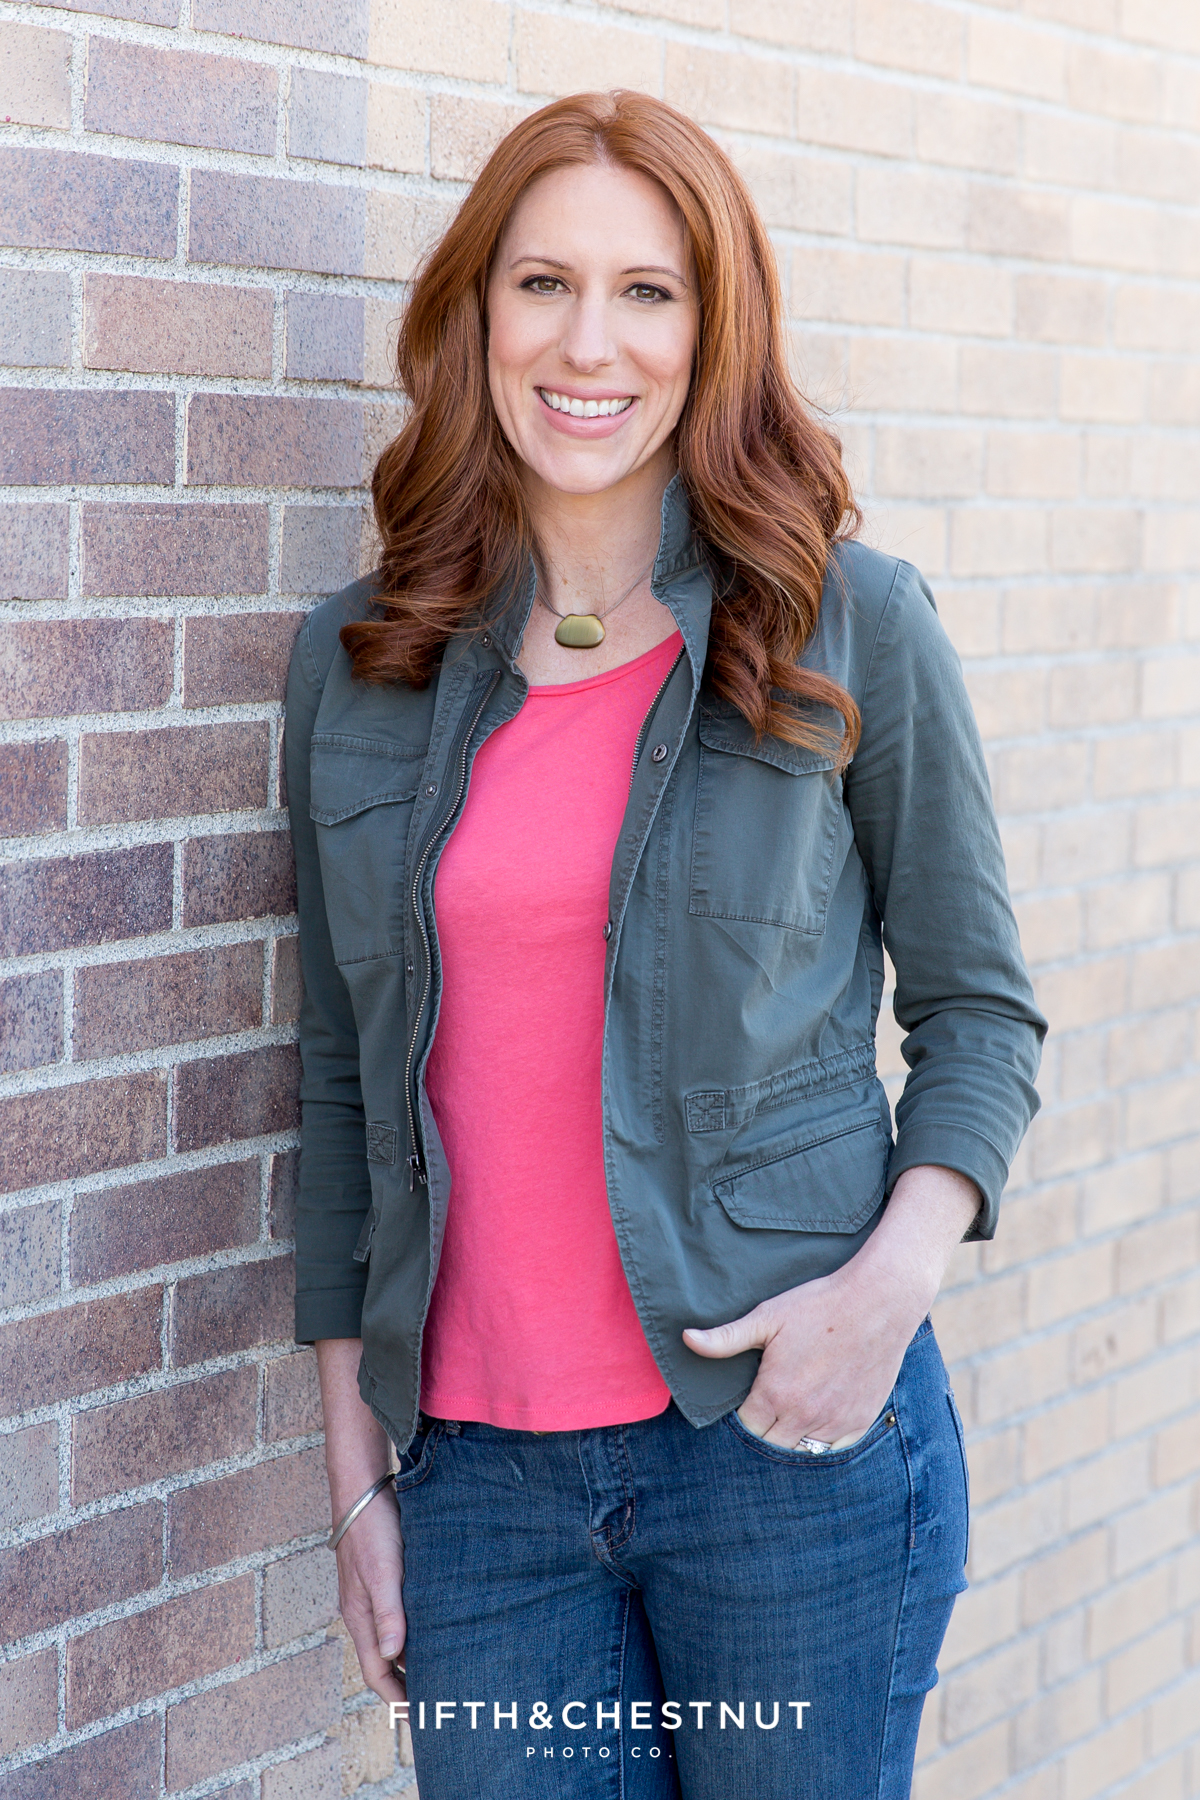 Reno Headshot Photographer | Amber Barnes of Start Human